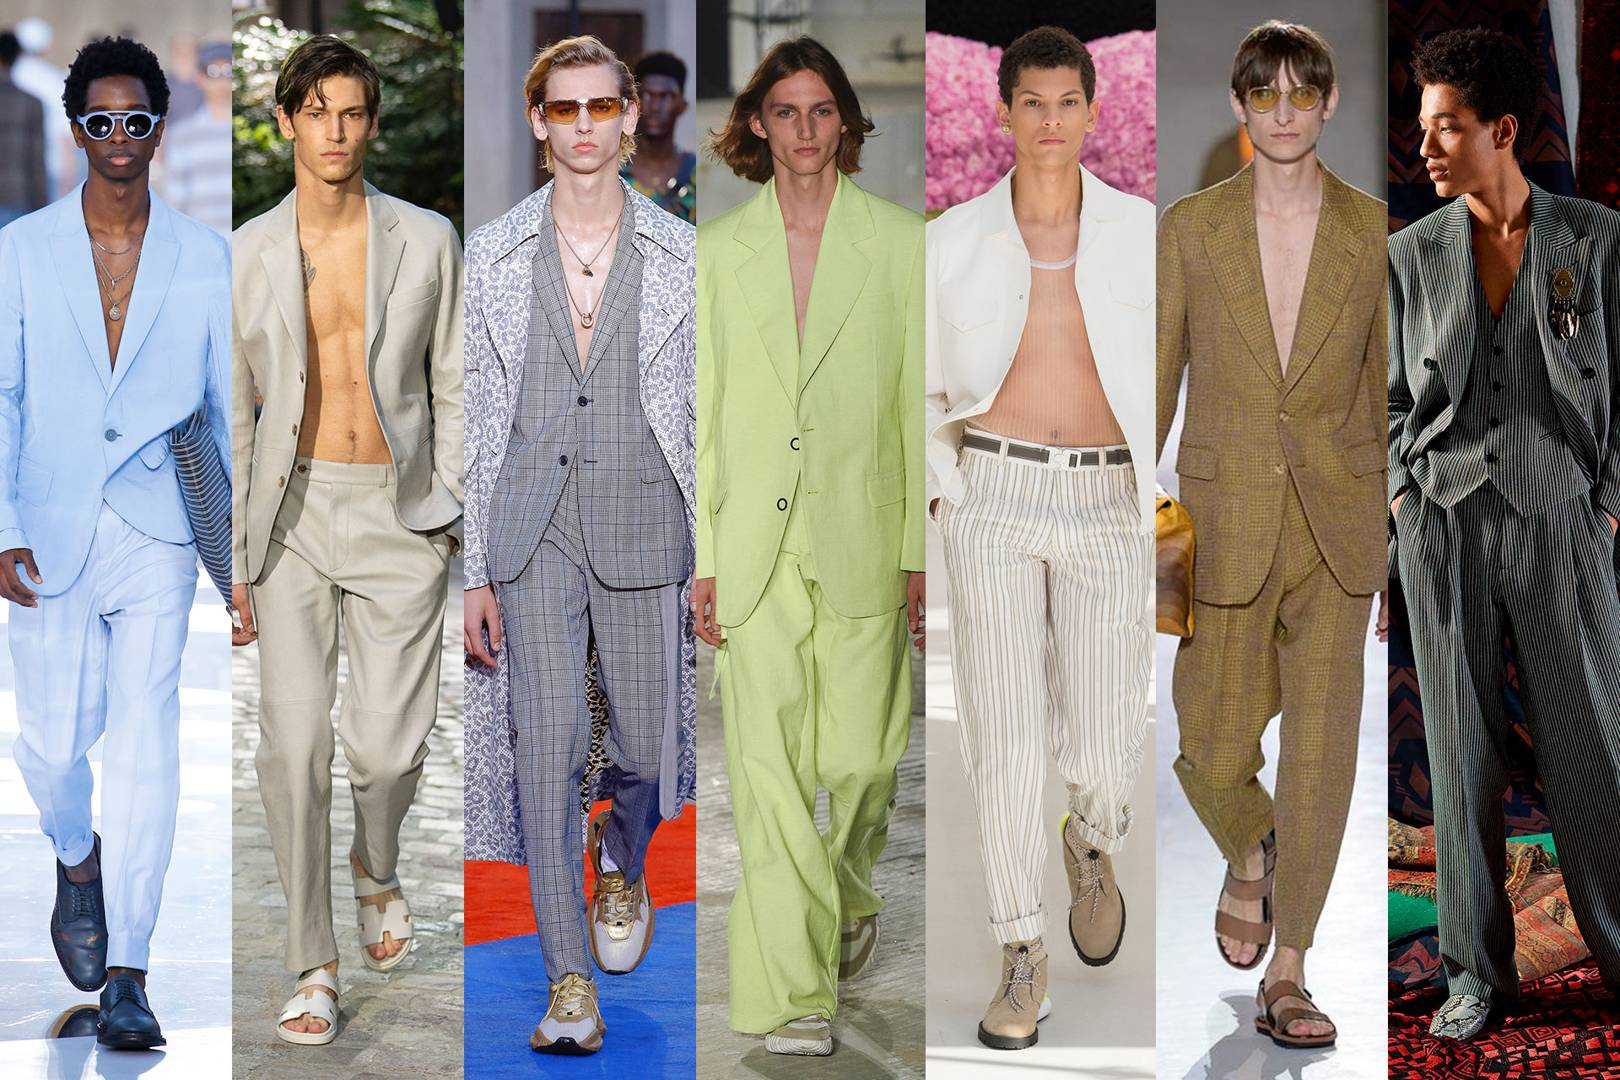 Watch 18 Pieces From Men's Fashion Week That'll Look Better onYou video